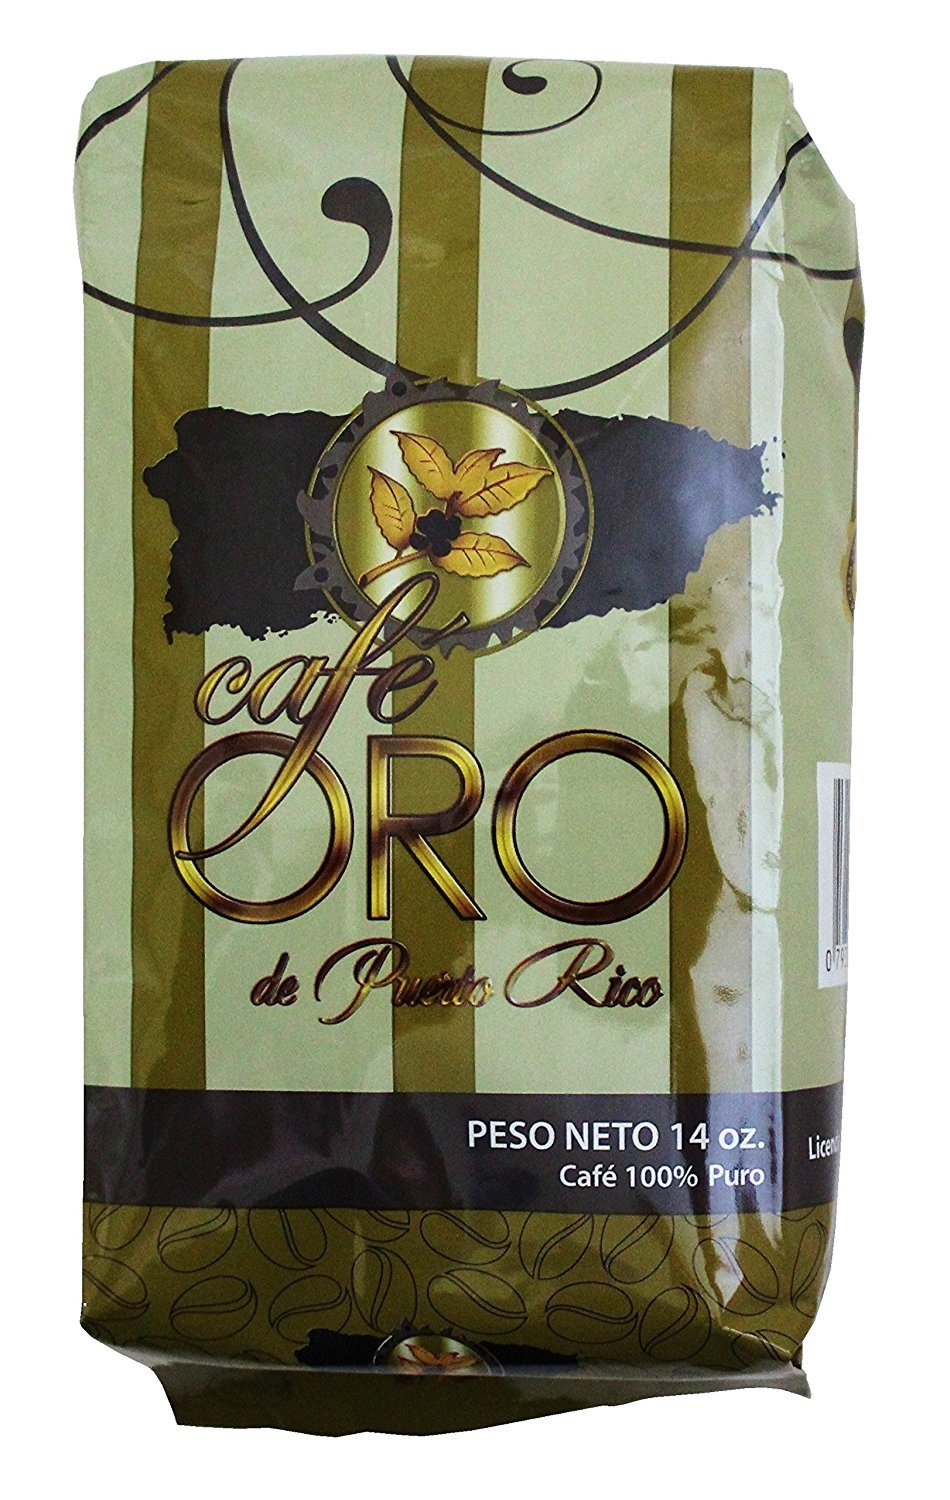 Gold Coffee~Cafe Oro De Puerto Rico 14 oz